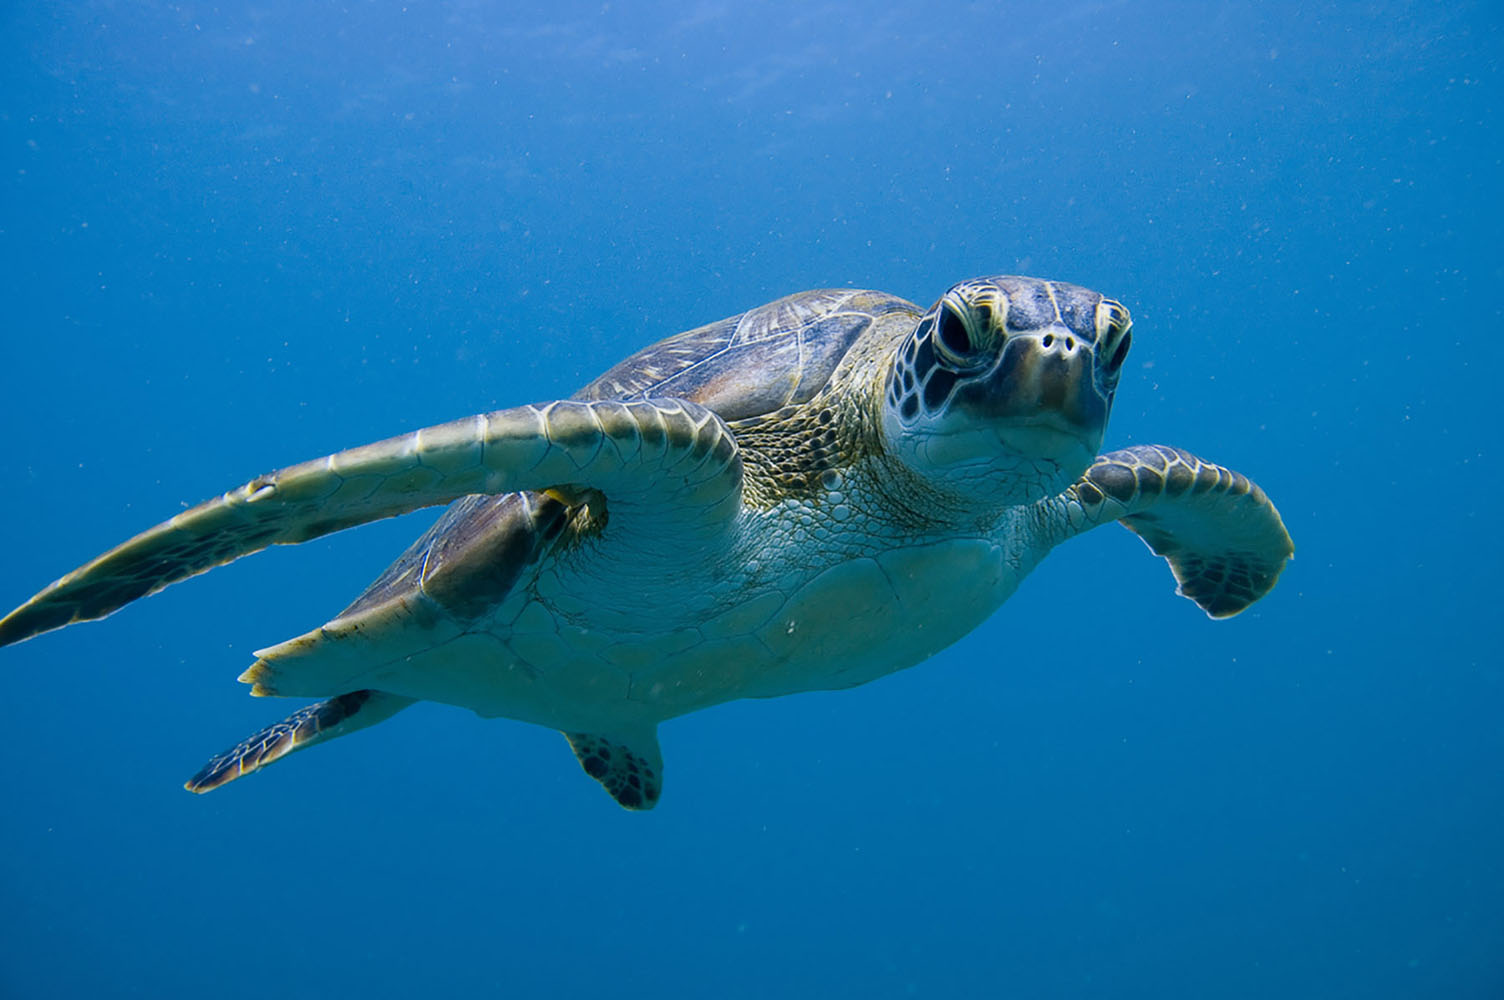 A turtle at Ningaloo Reef in Exmouth, Australia.